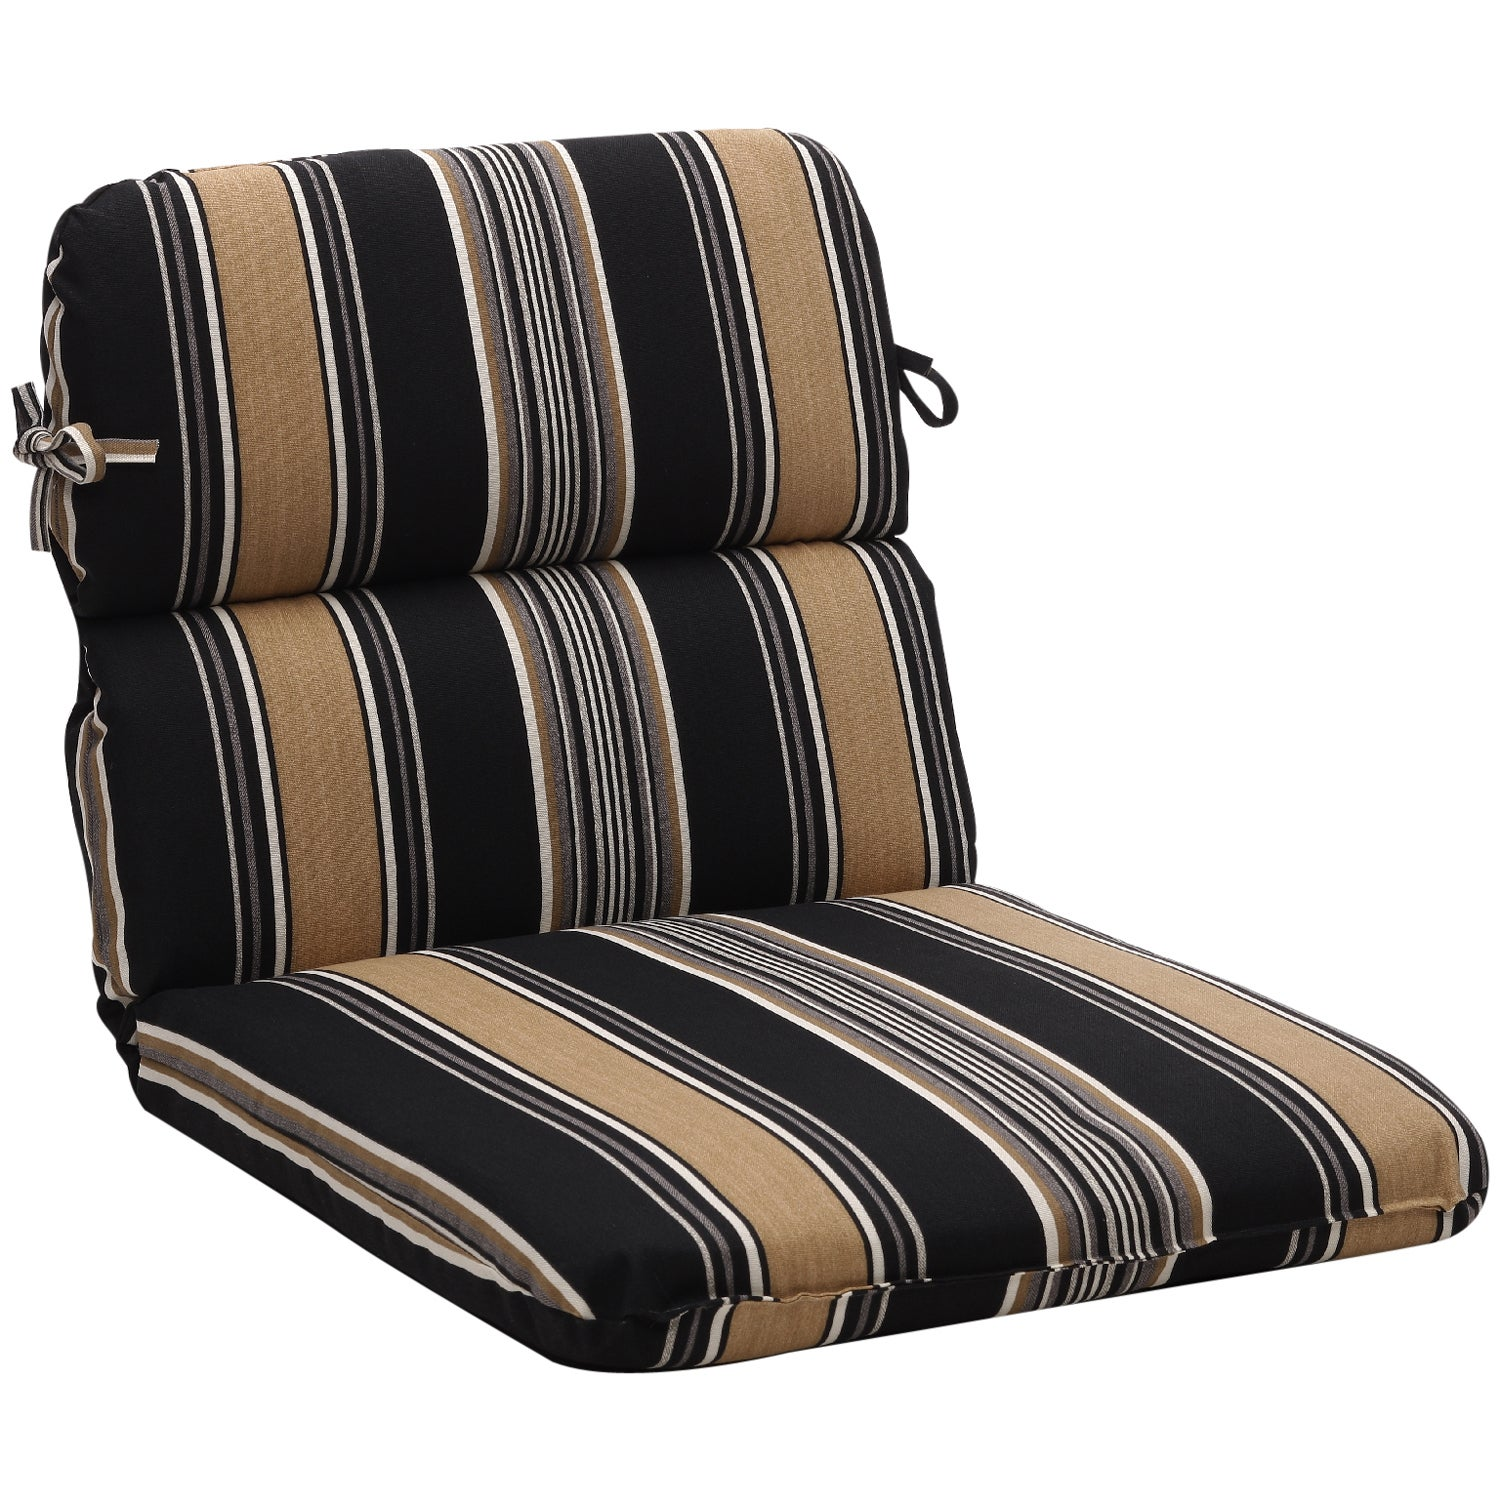 Rounded Black Tan Stripe Outdoor Chair Cushion